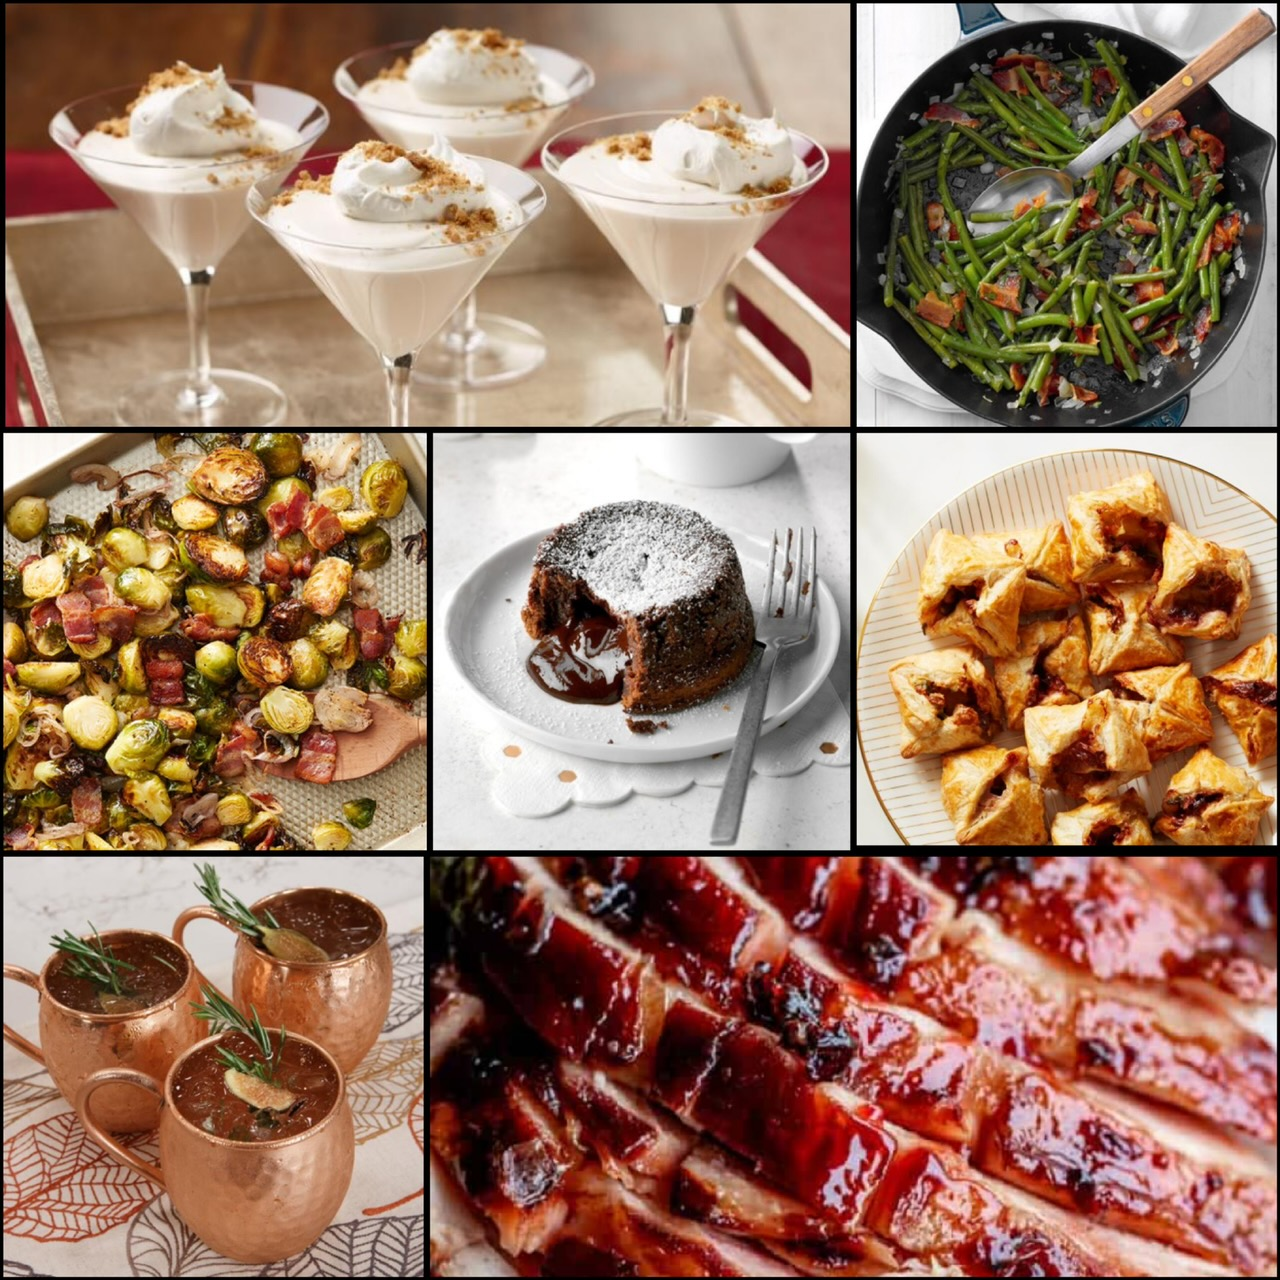 What Are Some Delicious Recipes To Make This Holiday Season?